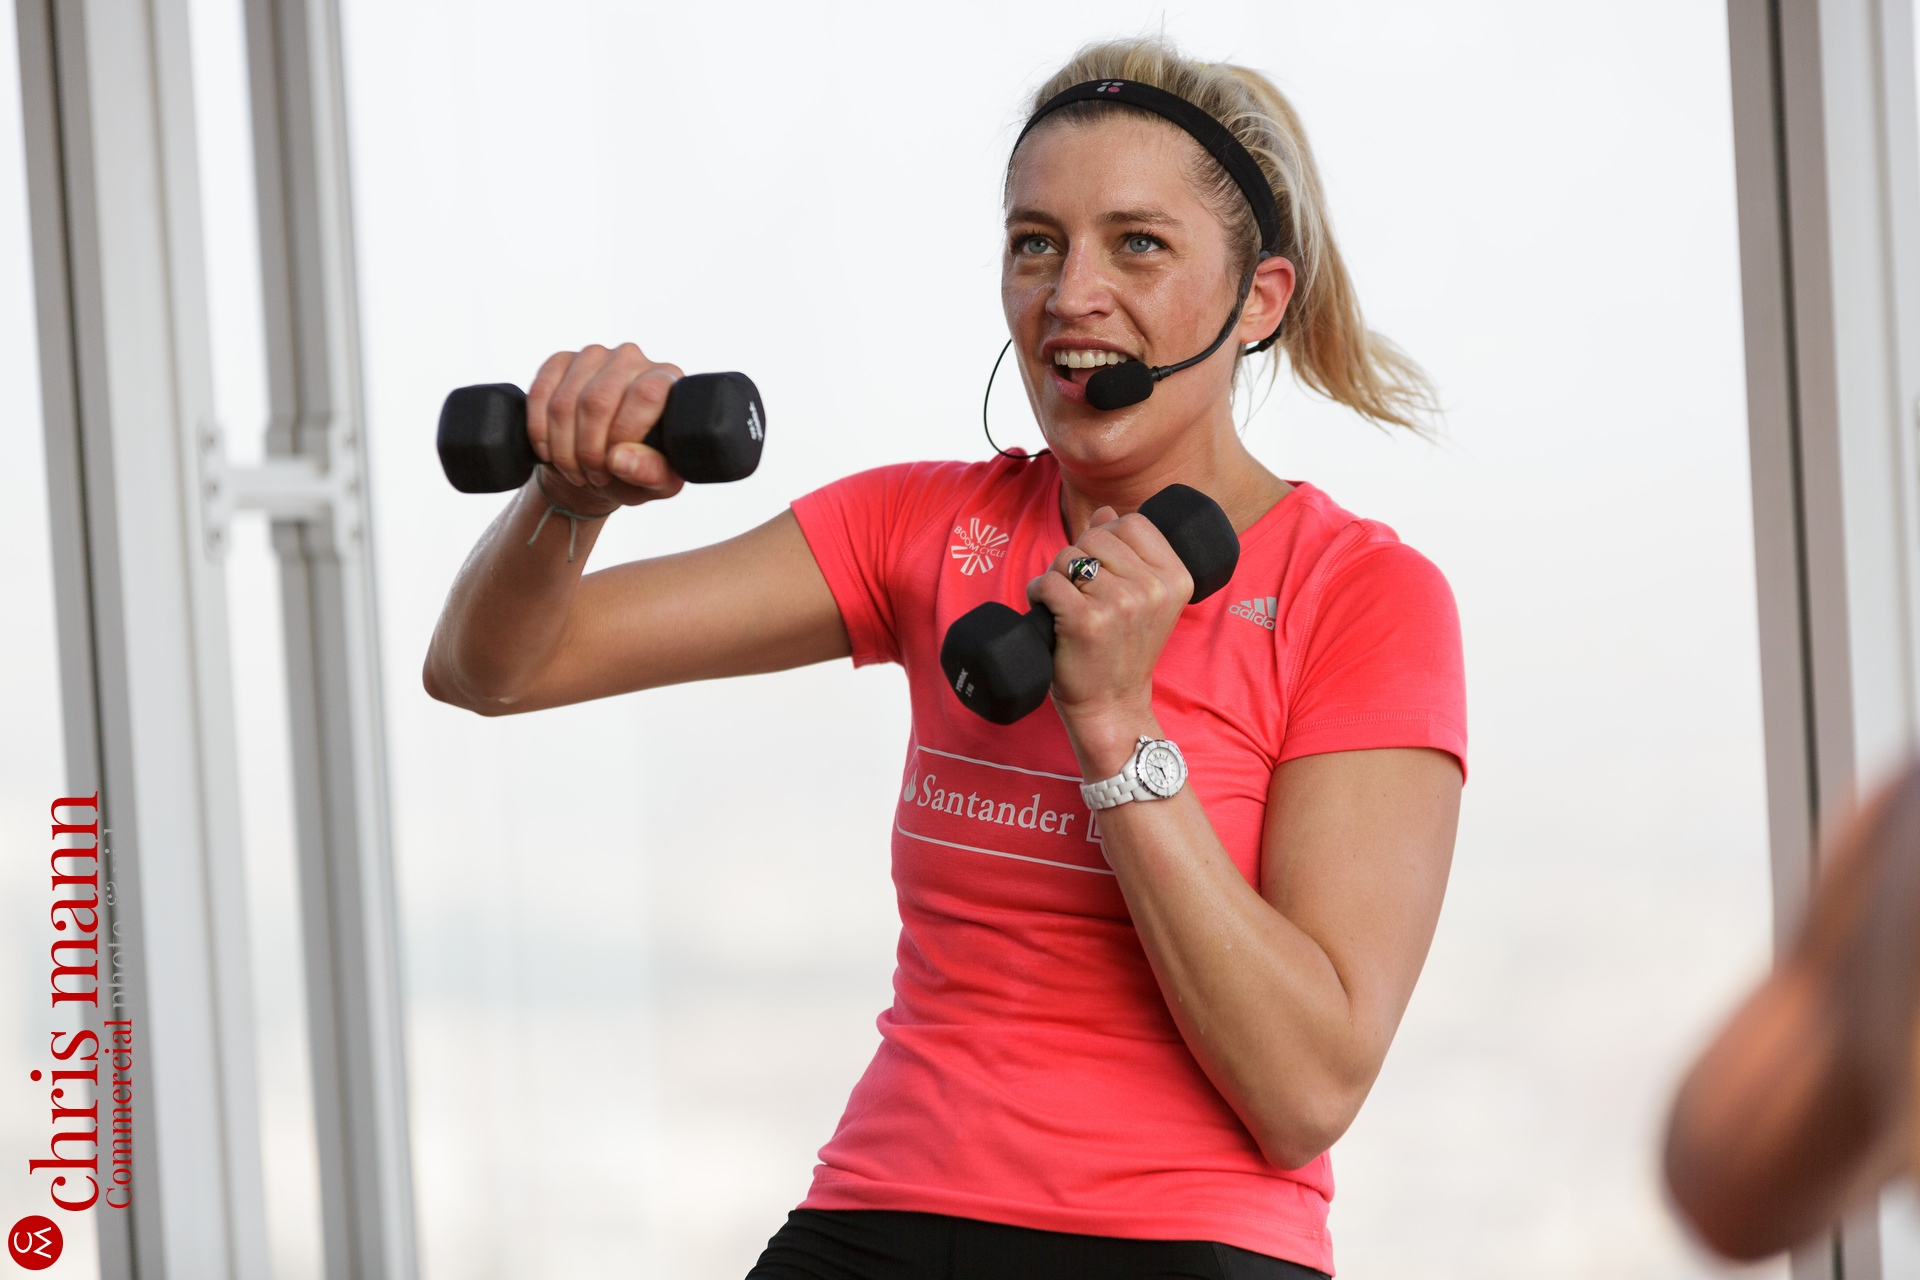 fitness instructor at Santander Cycles spinning class The Shard London June 2016